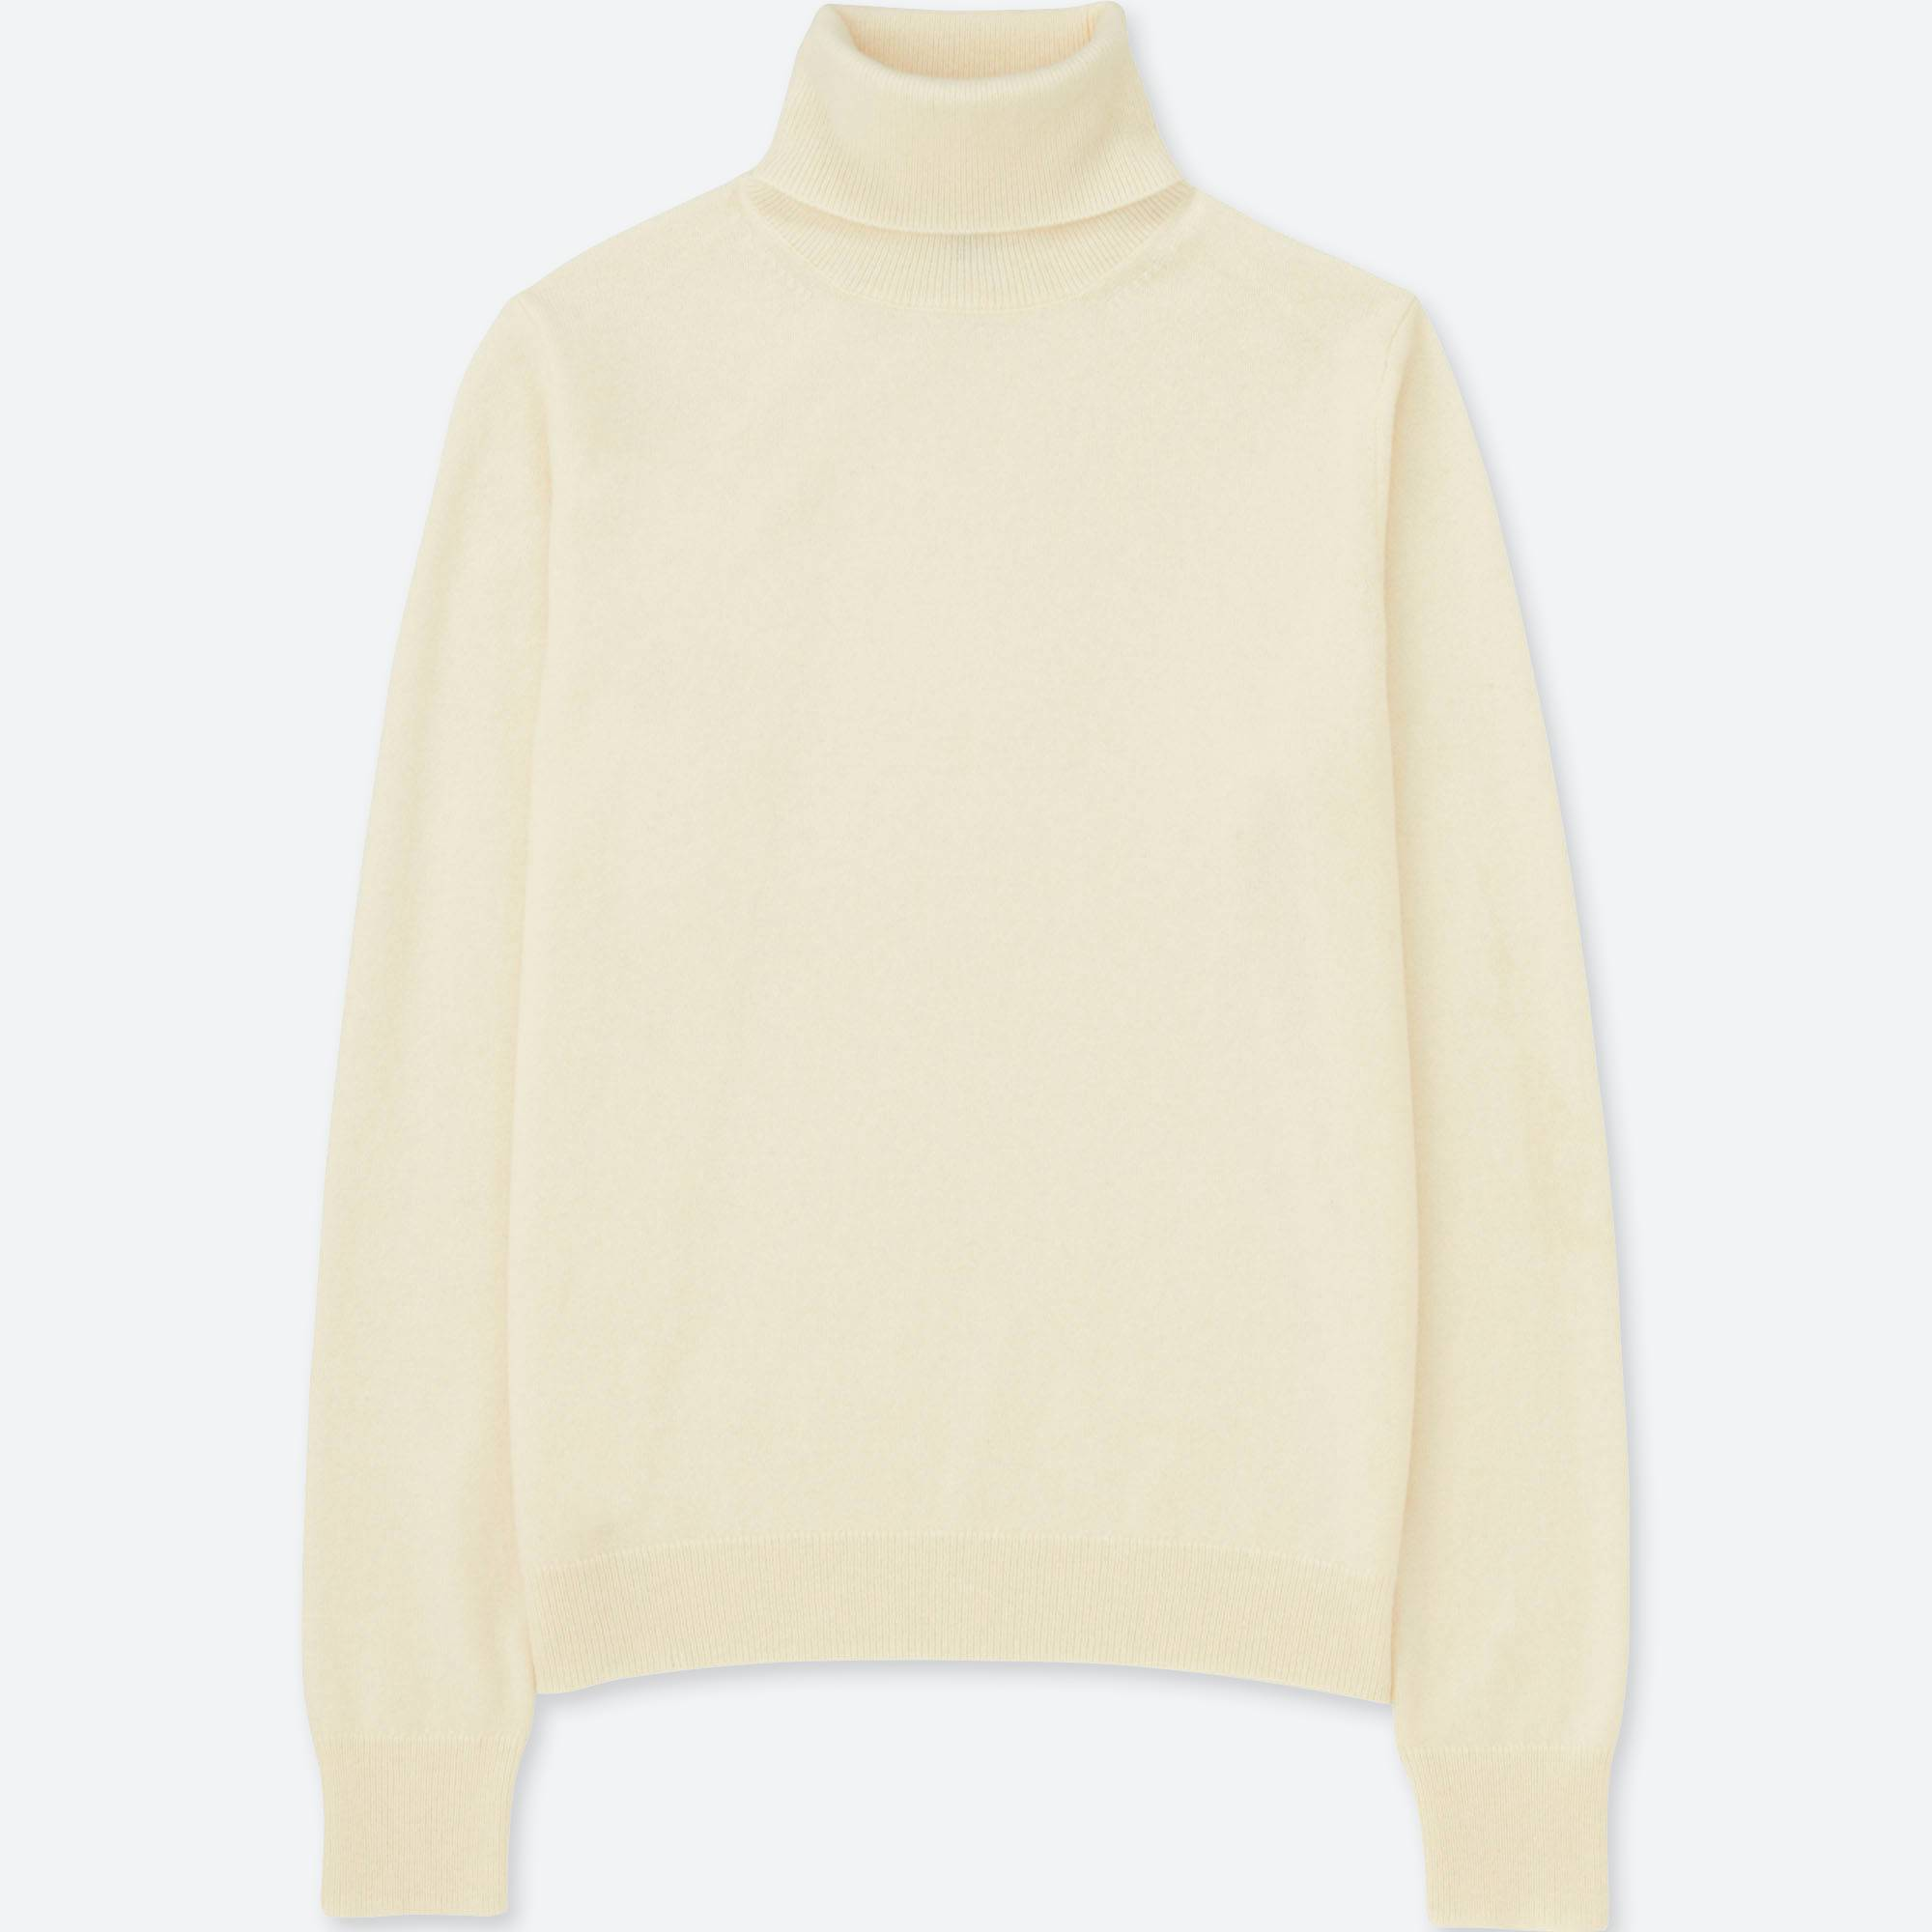 WOMEN CASHMERE TURTLENECK SWEATER | UNIQLO US